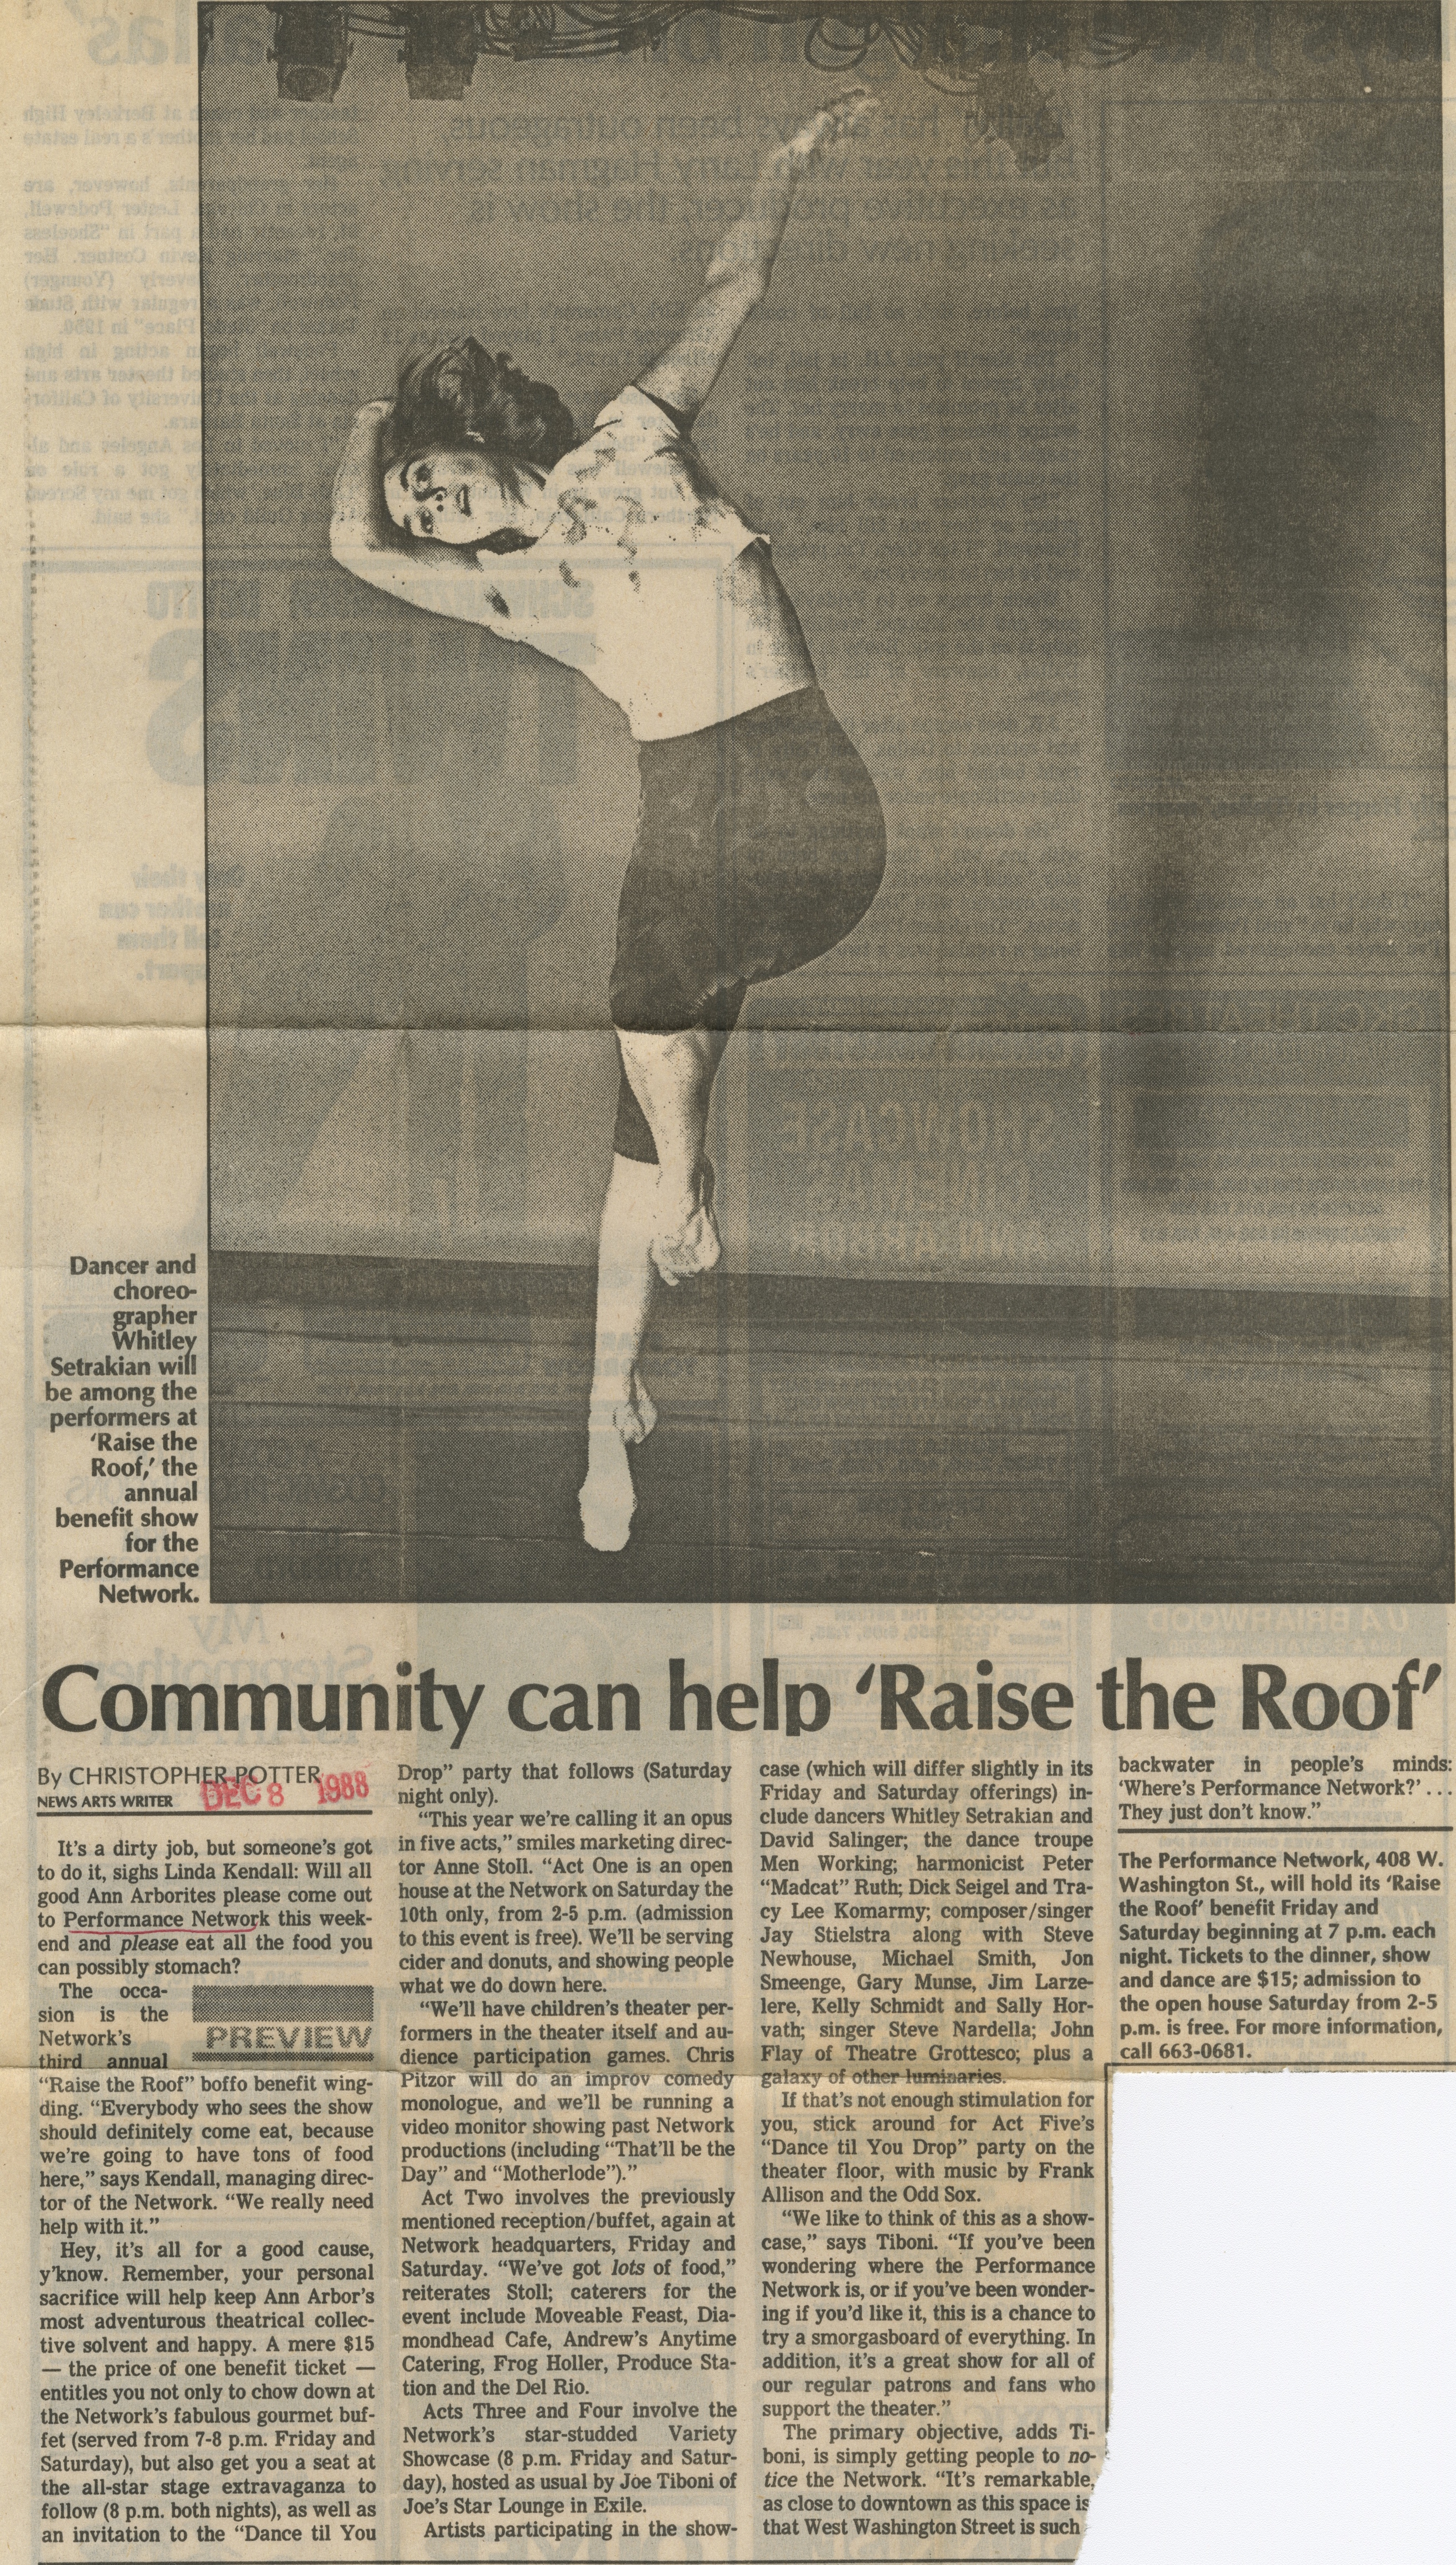 Community can help 'Raise the Roof' image